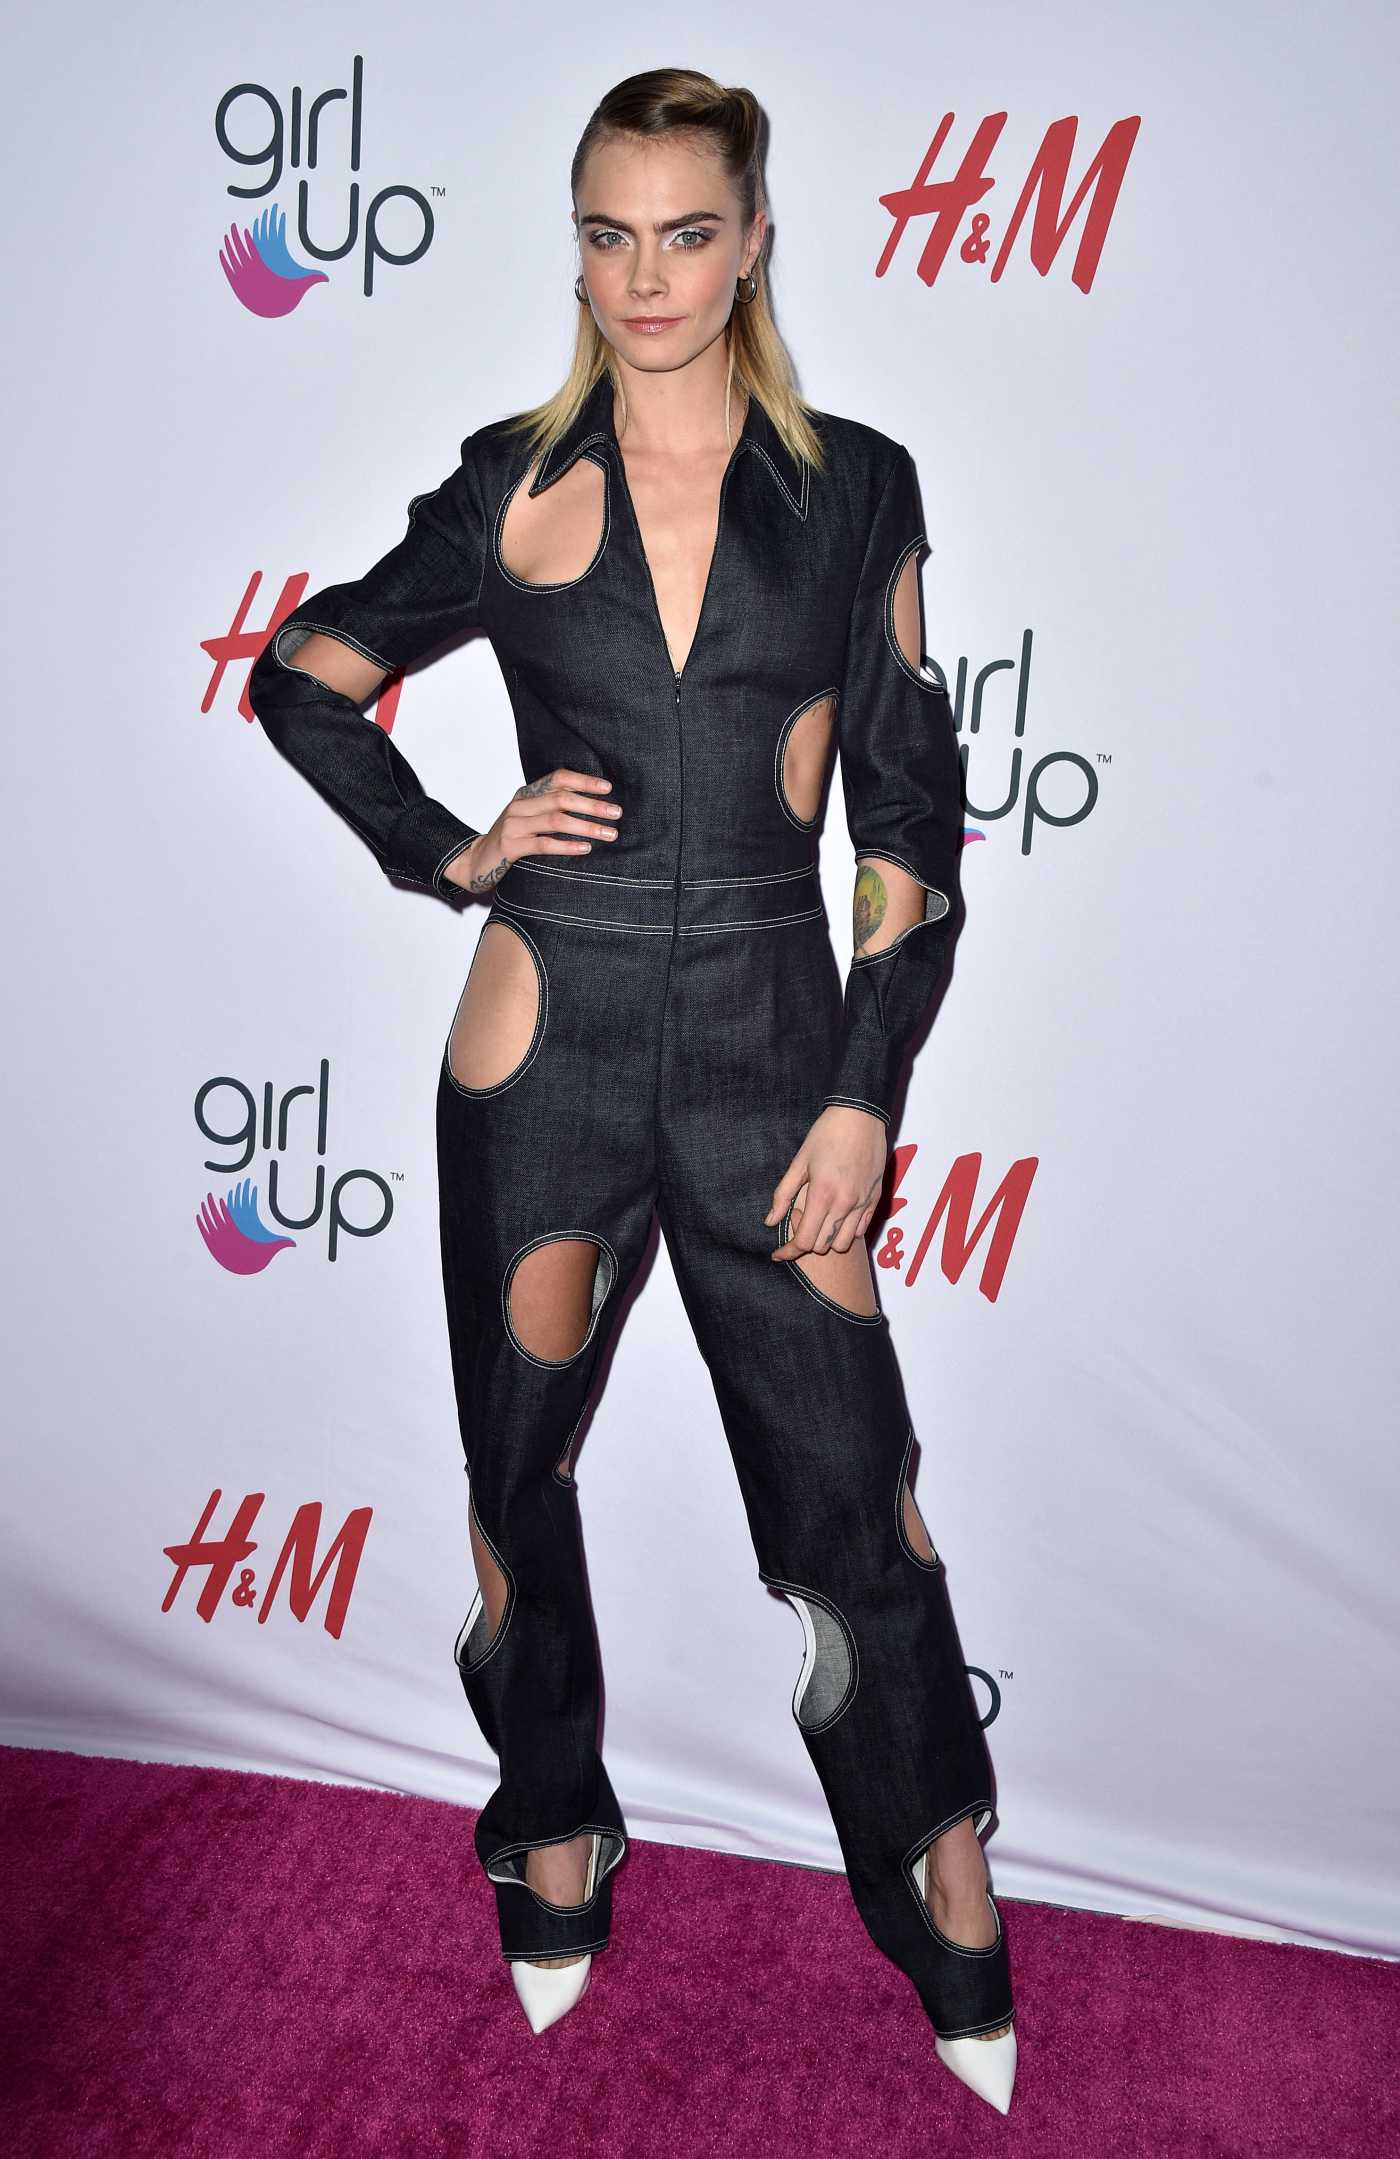 Cara Delevingne Attends the 2nd Annual Girl Up #GirlHero Awards at the Beverly Wilshire Four Seasons Hotel in Beverly Hills 10/13/2019